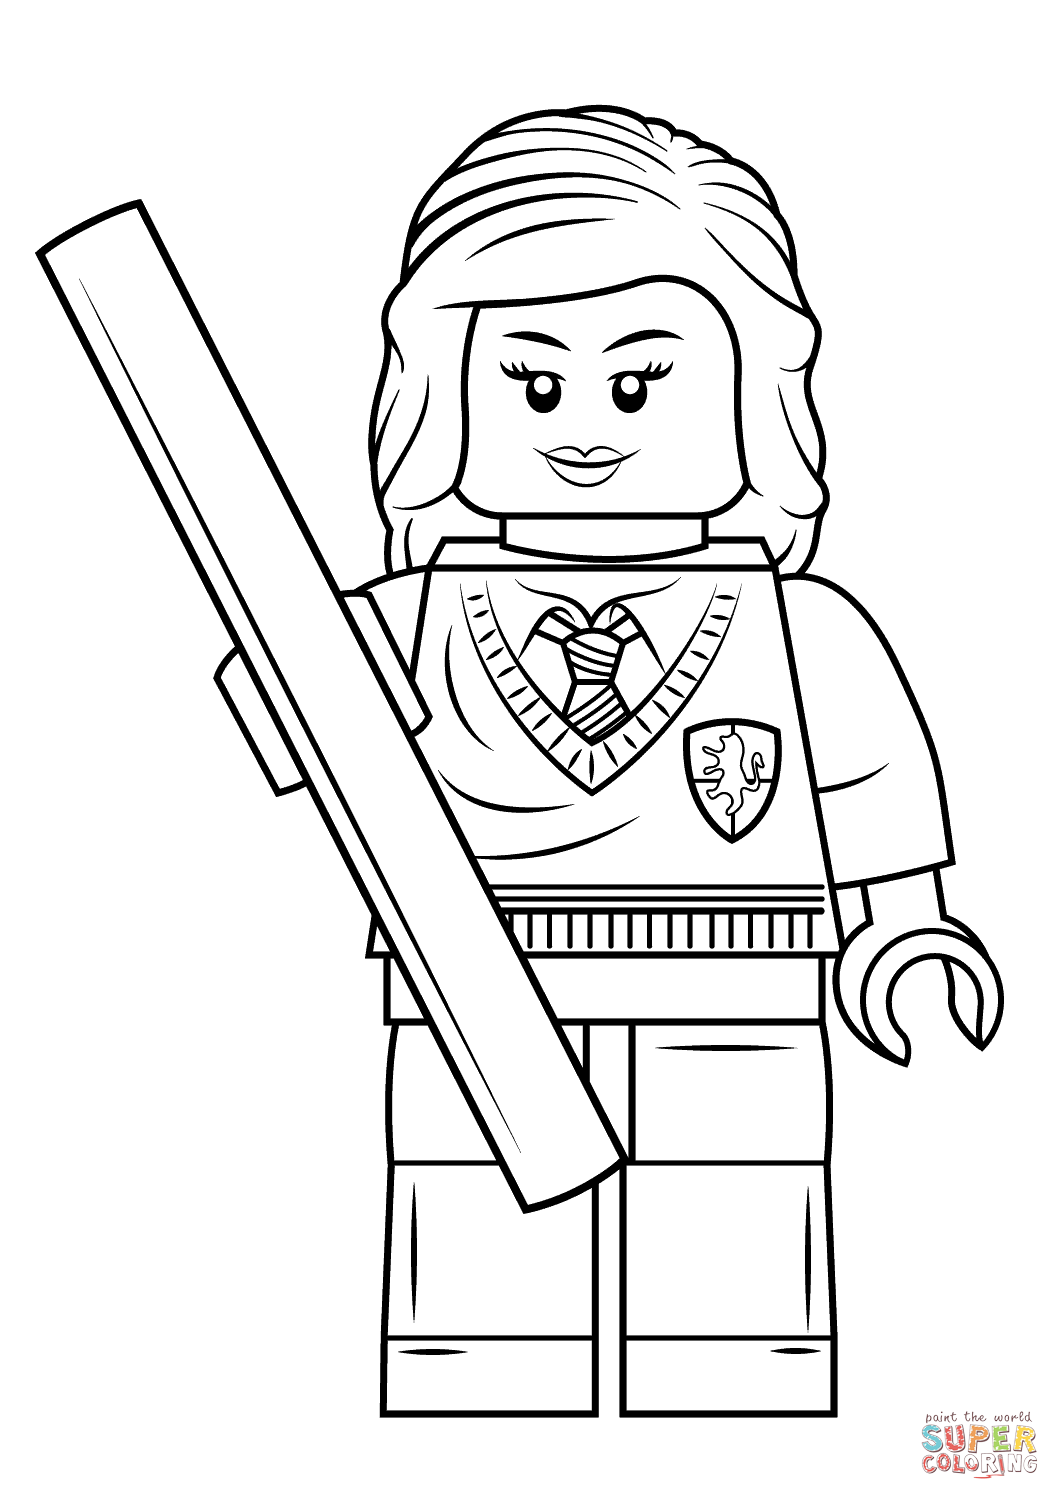 Lego Hermione Granger coloring page | Free Printable ...